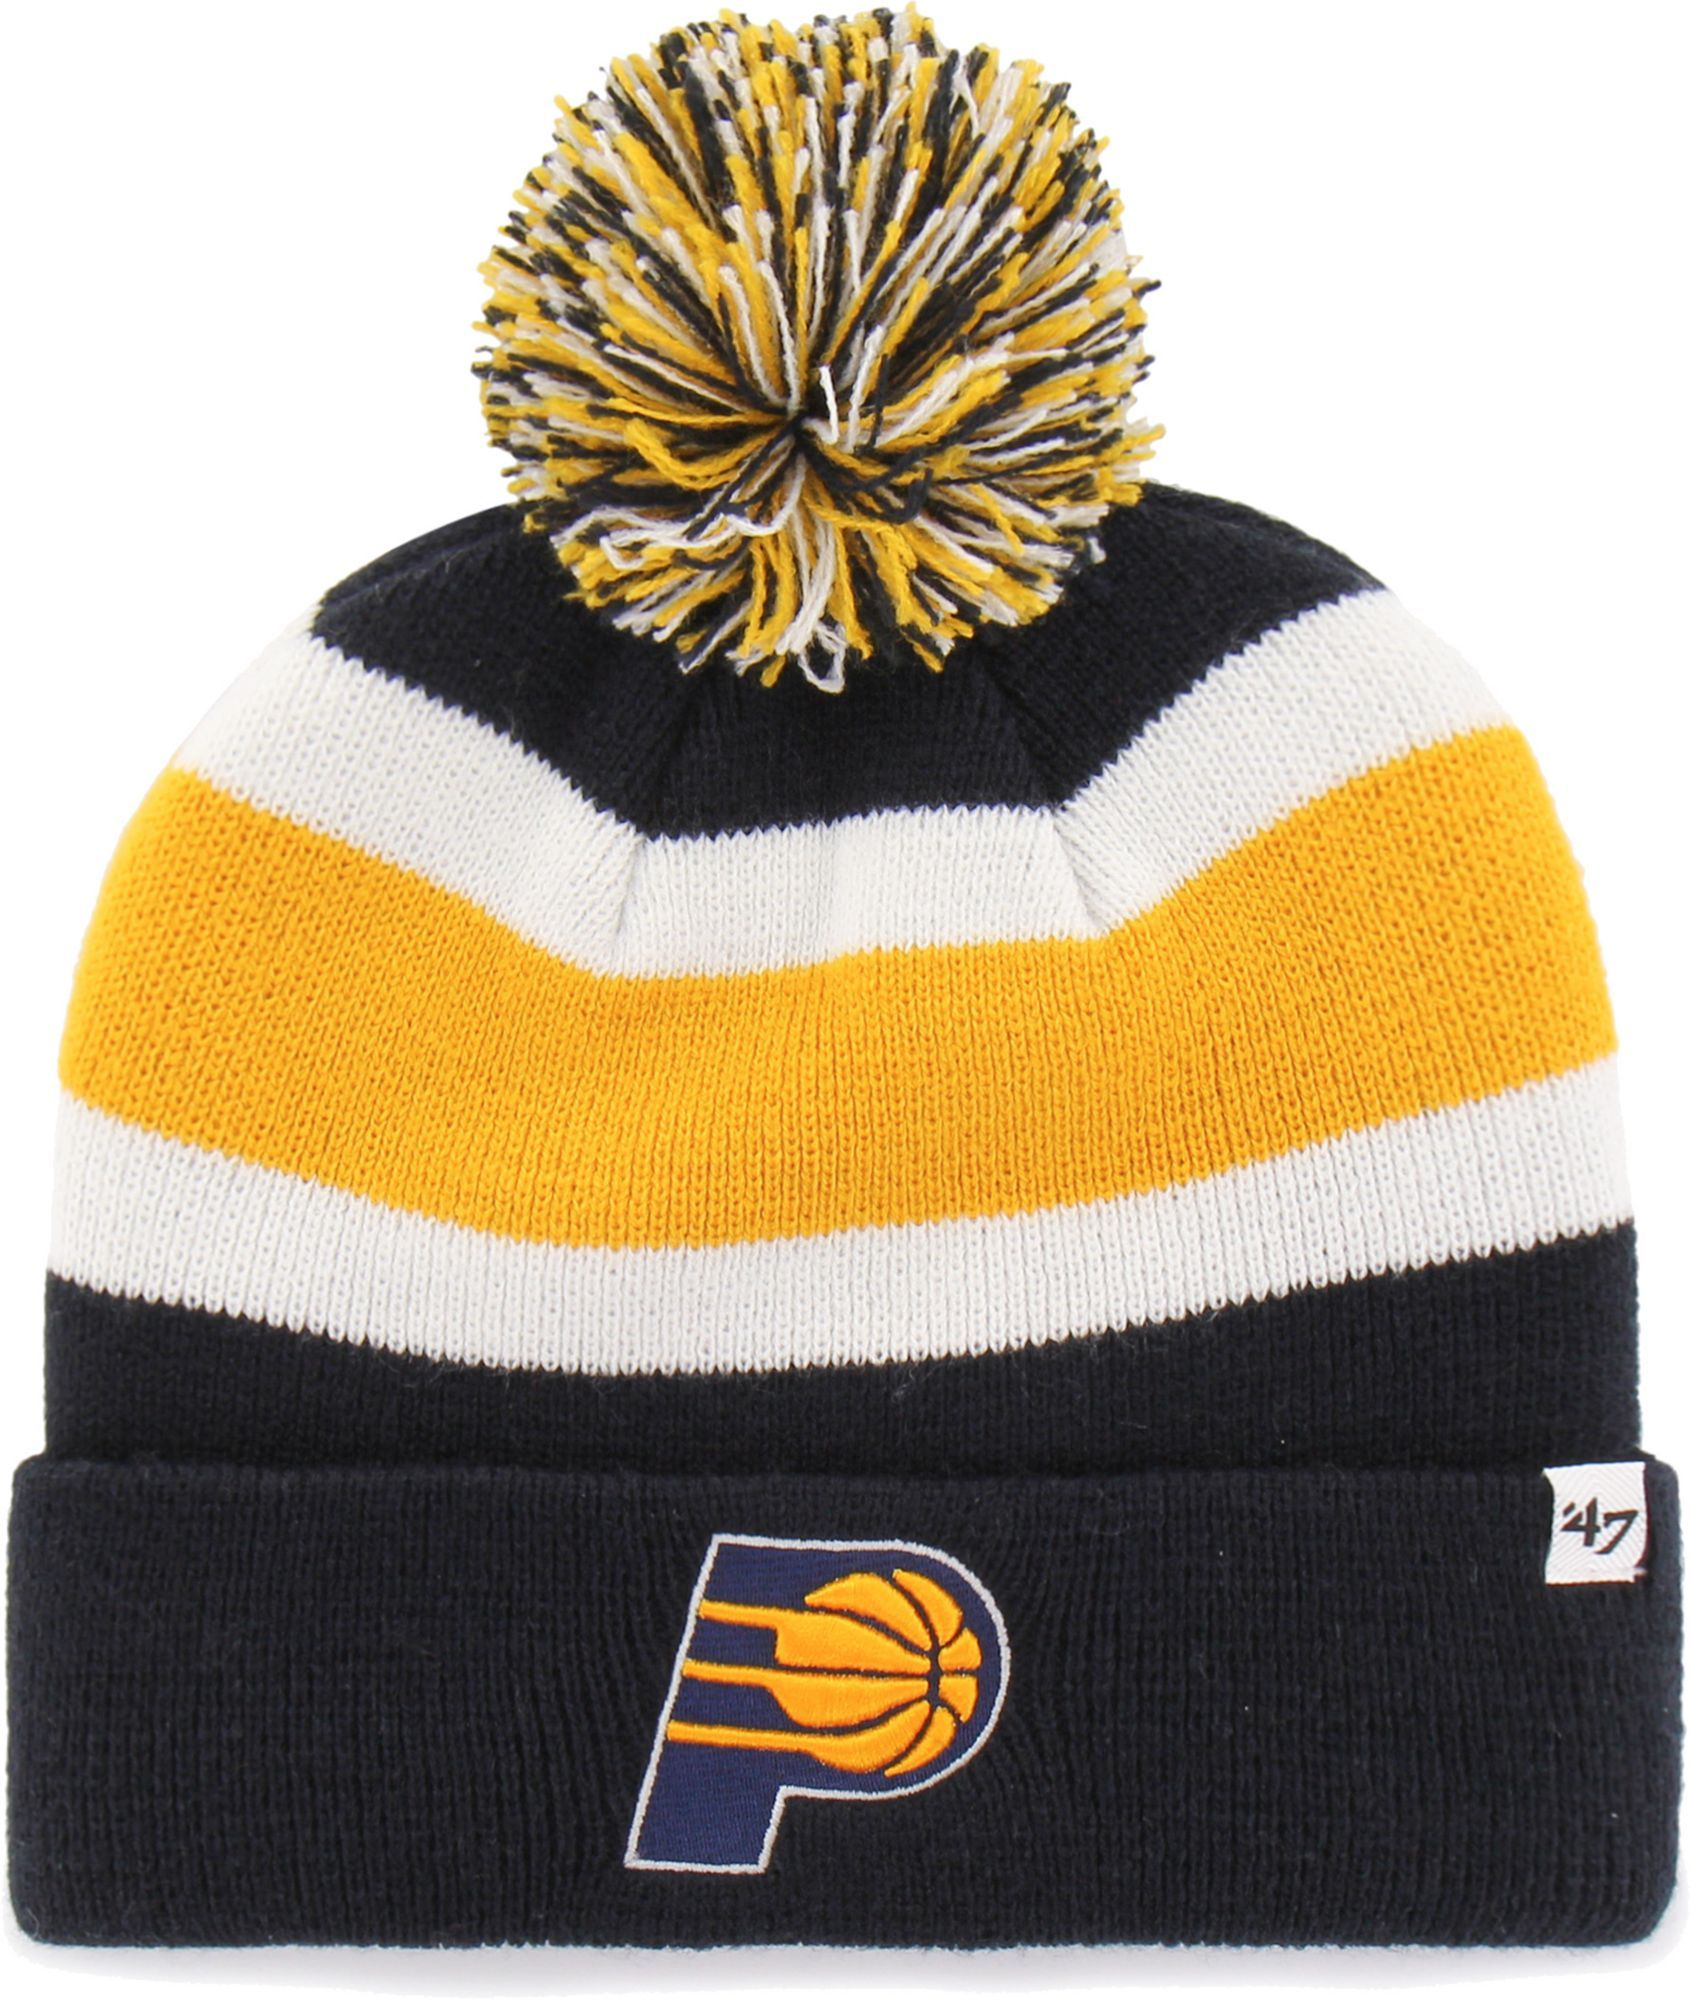 bb5295b7996 47 Men s Indiana Pacers Breakaway Knit Hat